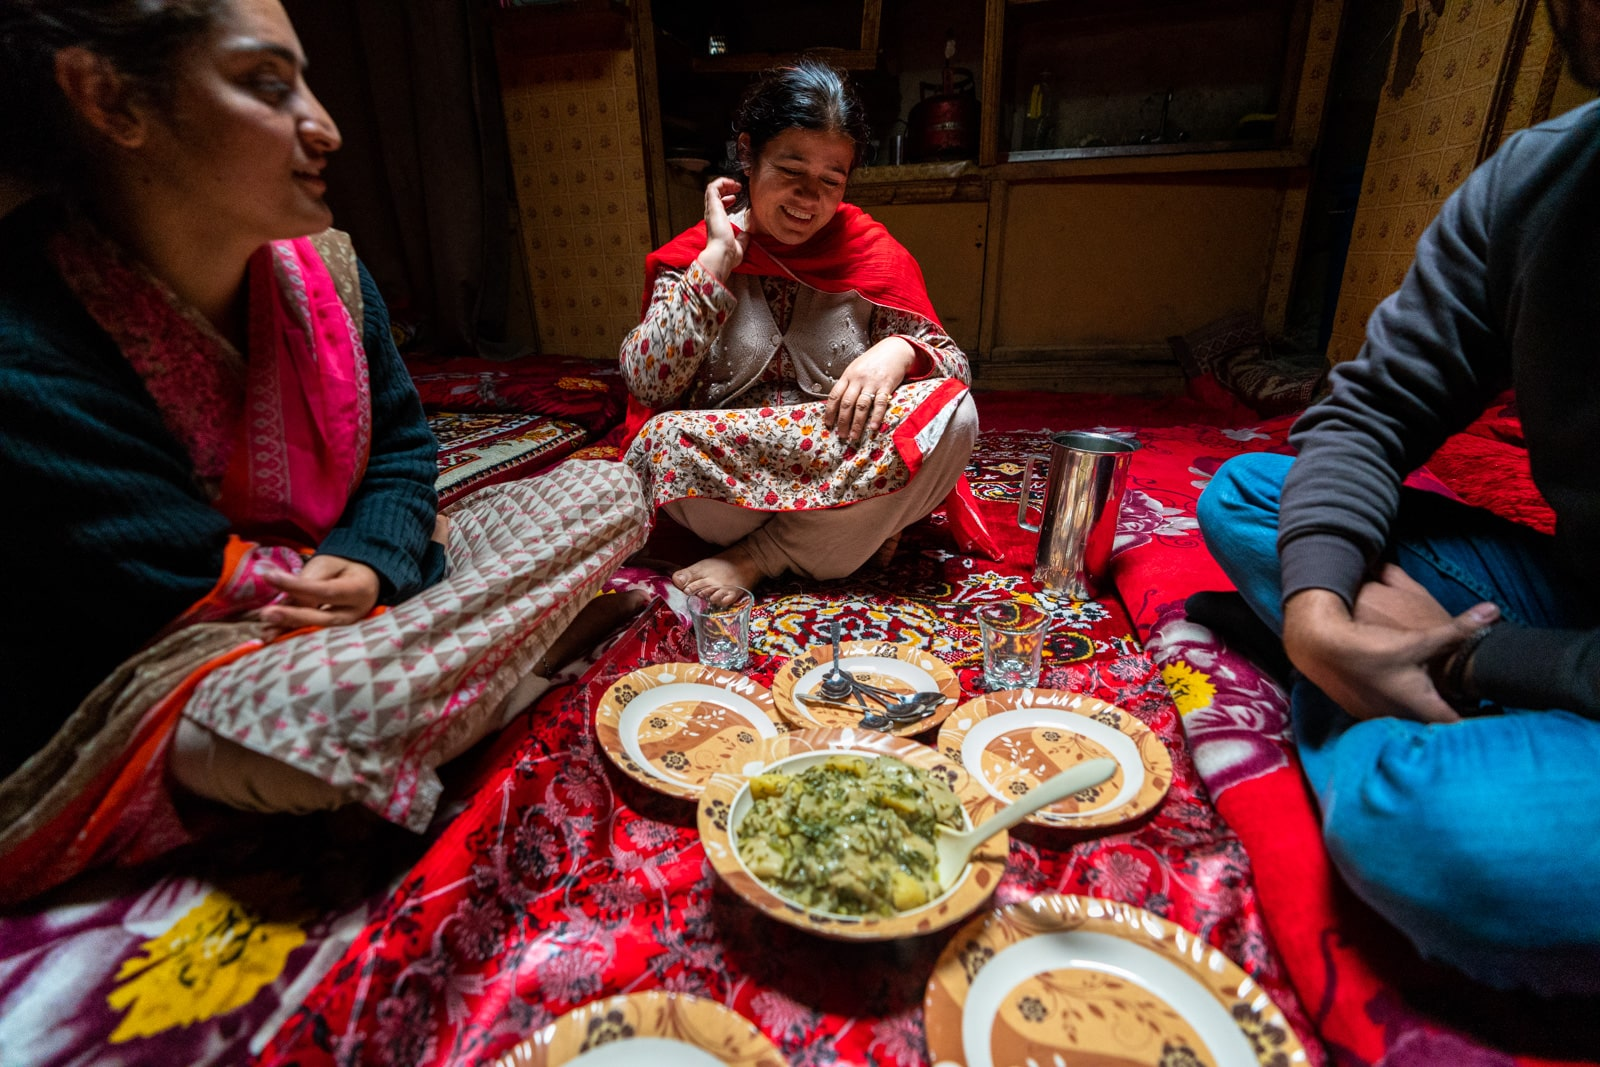 Homemade food in a homestay in Altit, Pakistan